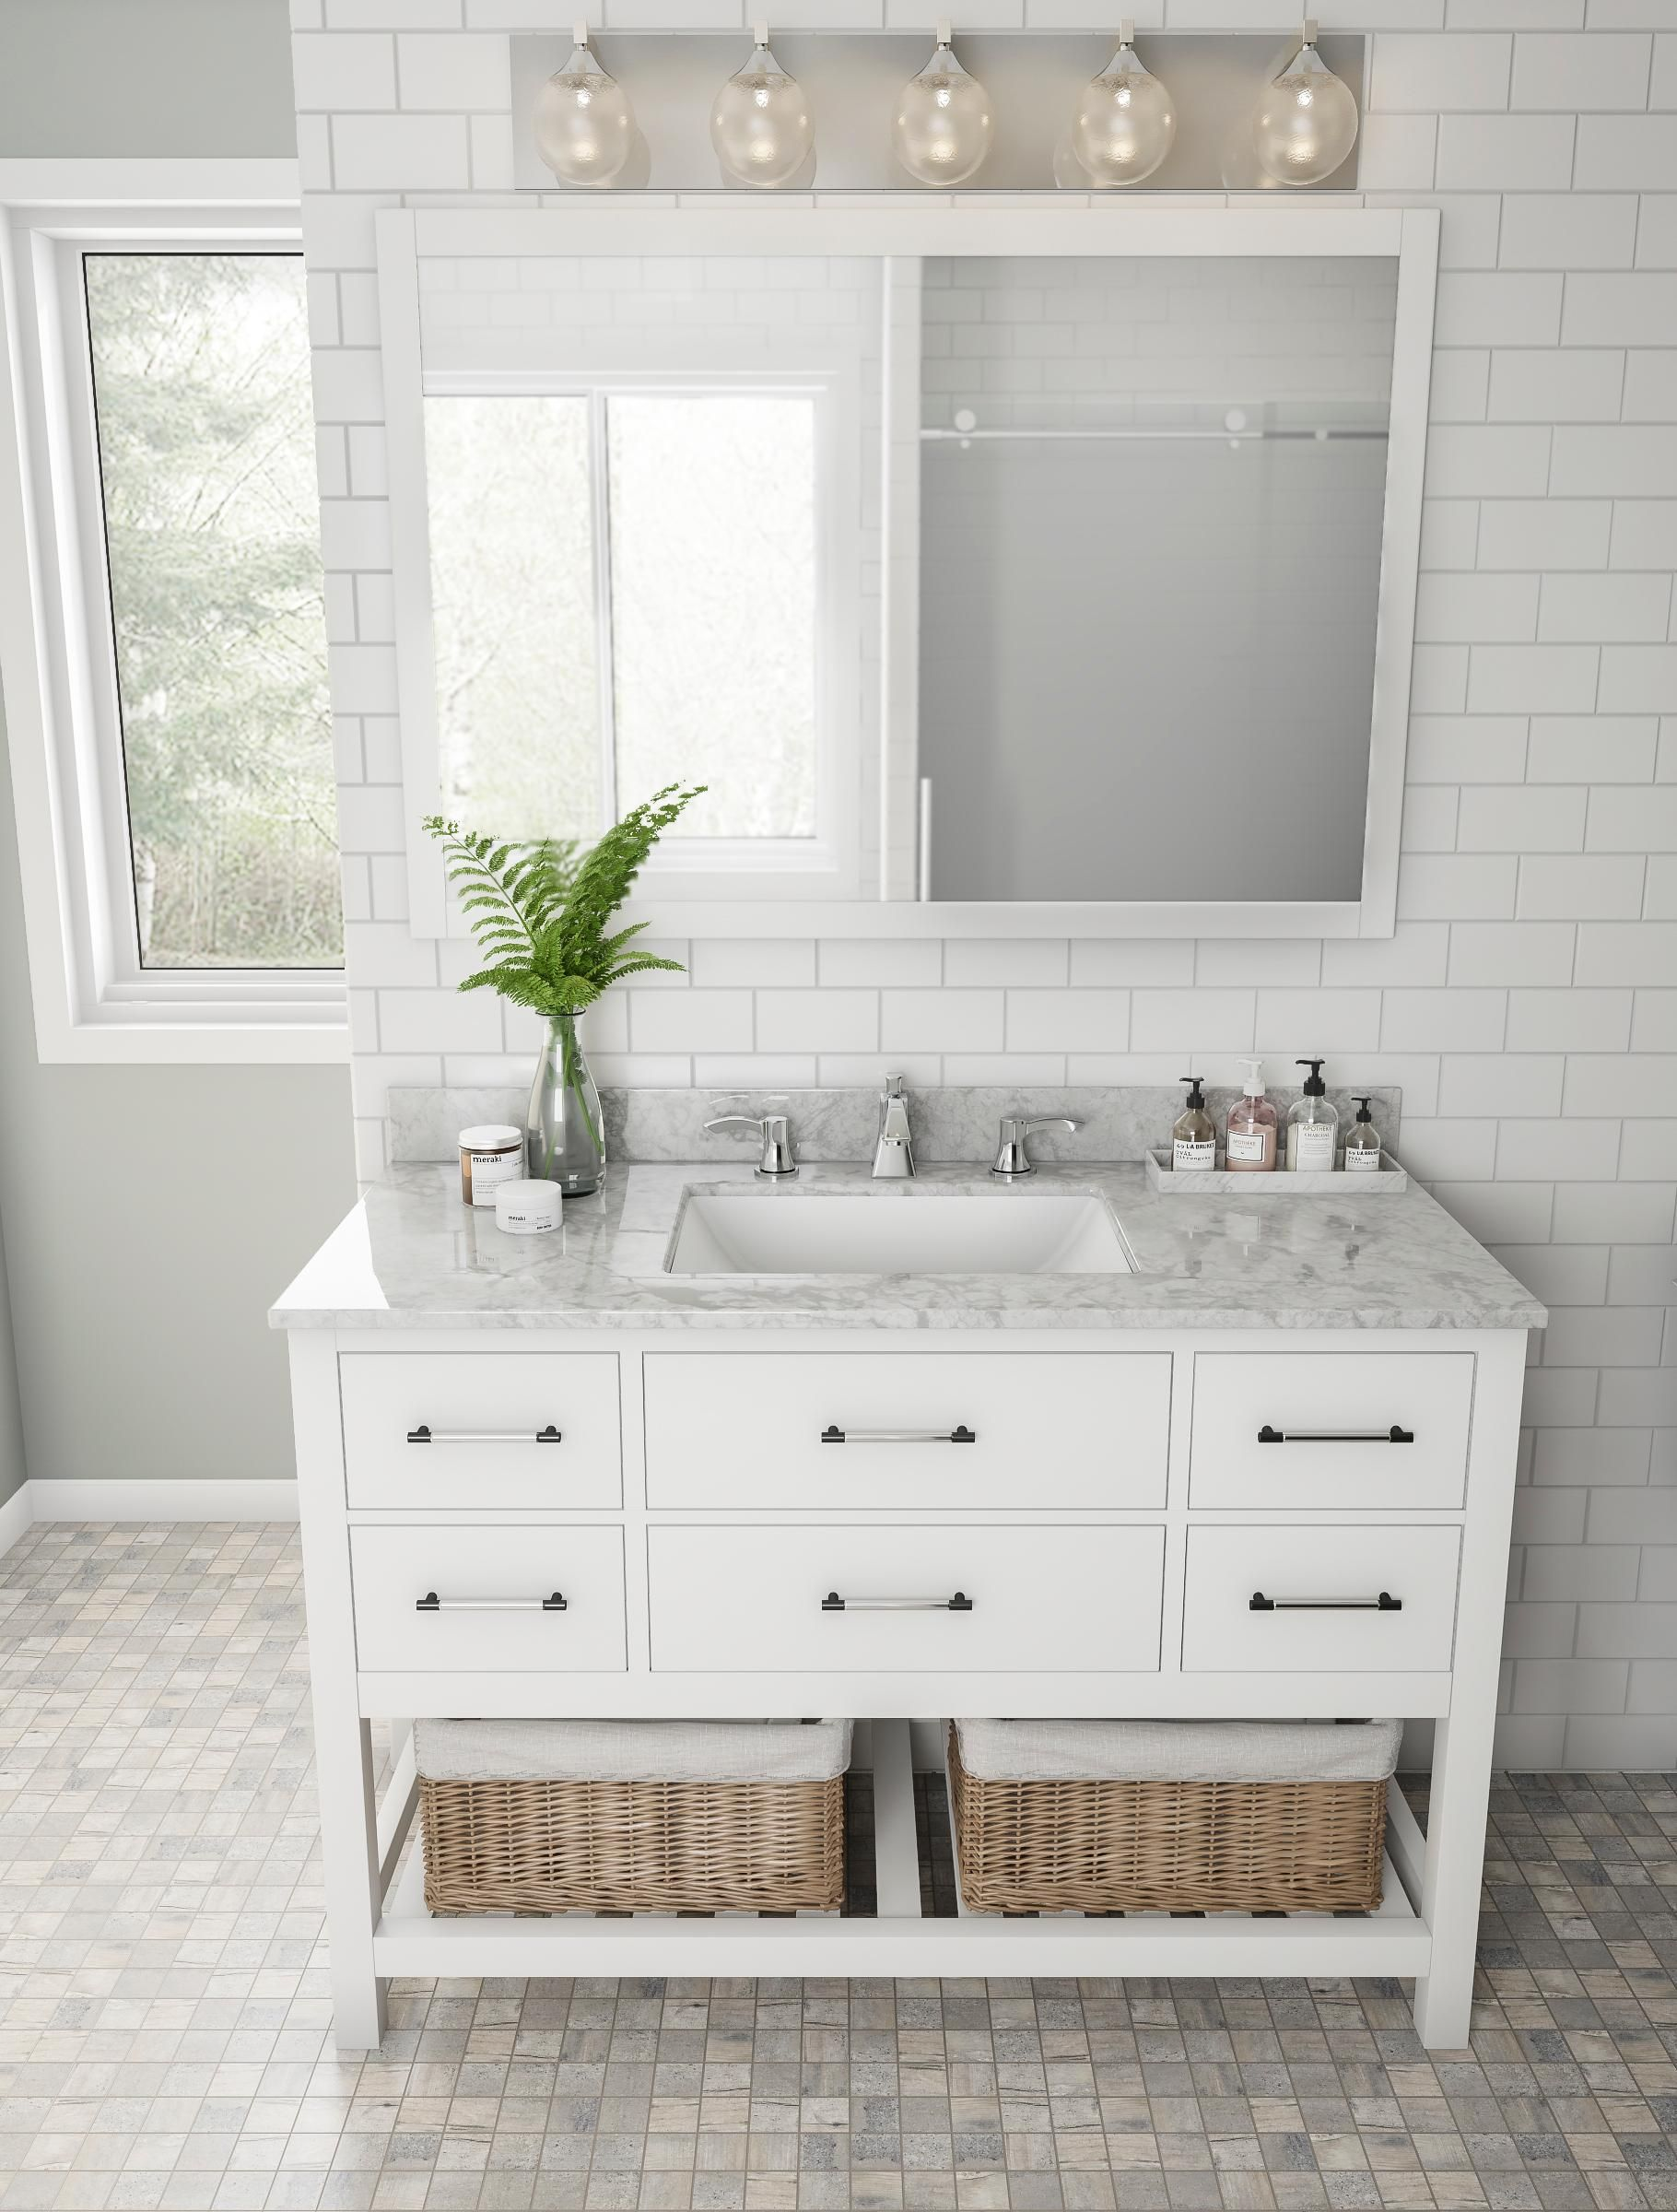 Blend Classic Tile Styles For Extra Visual Interest Tile The Wall